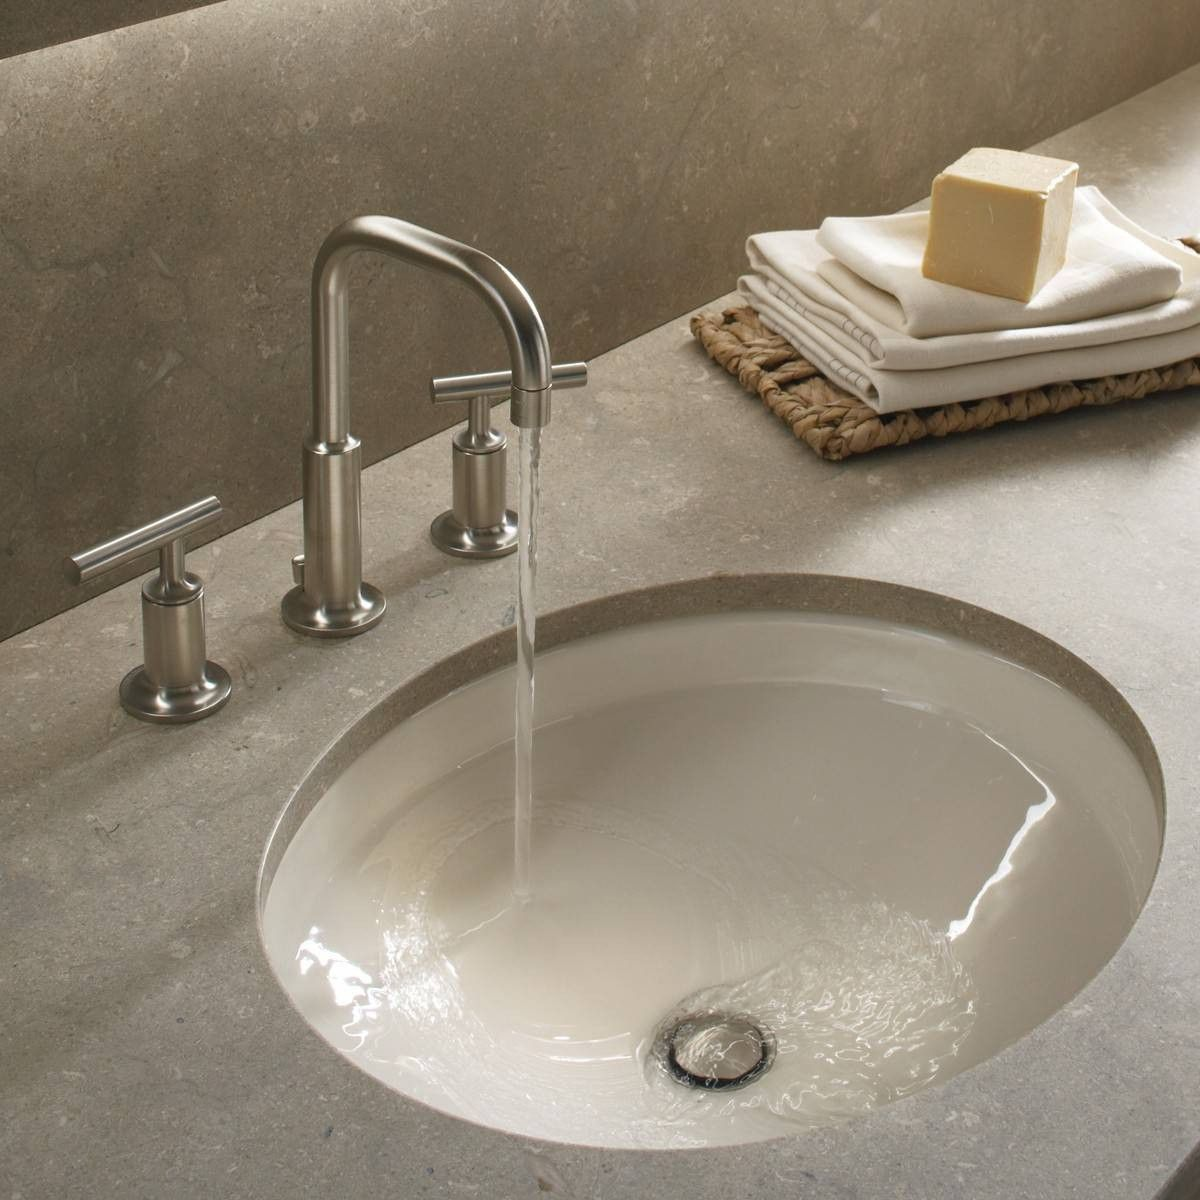 24 Here S An Overview Of How To Install Your Own Bathroom Sink Tub Faucet Bathroom Sink Faucets Sink Faucets